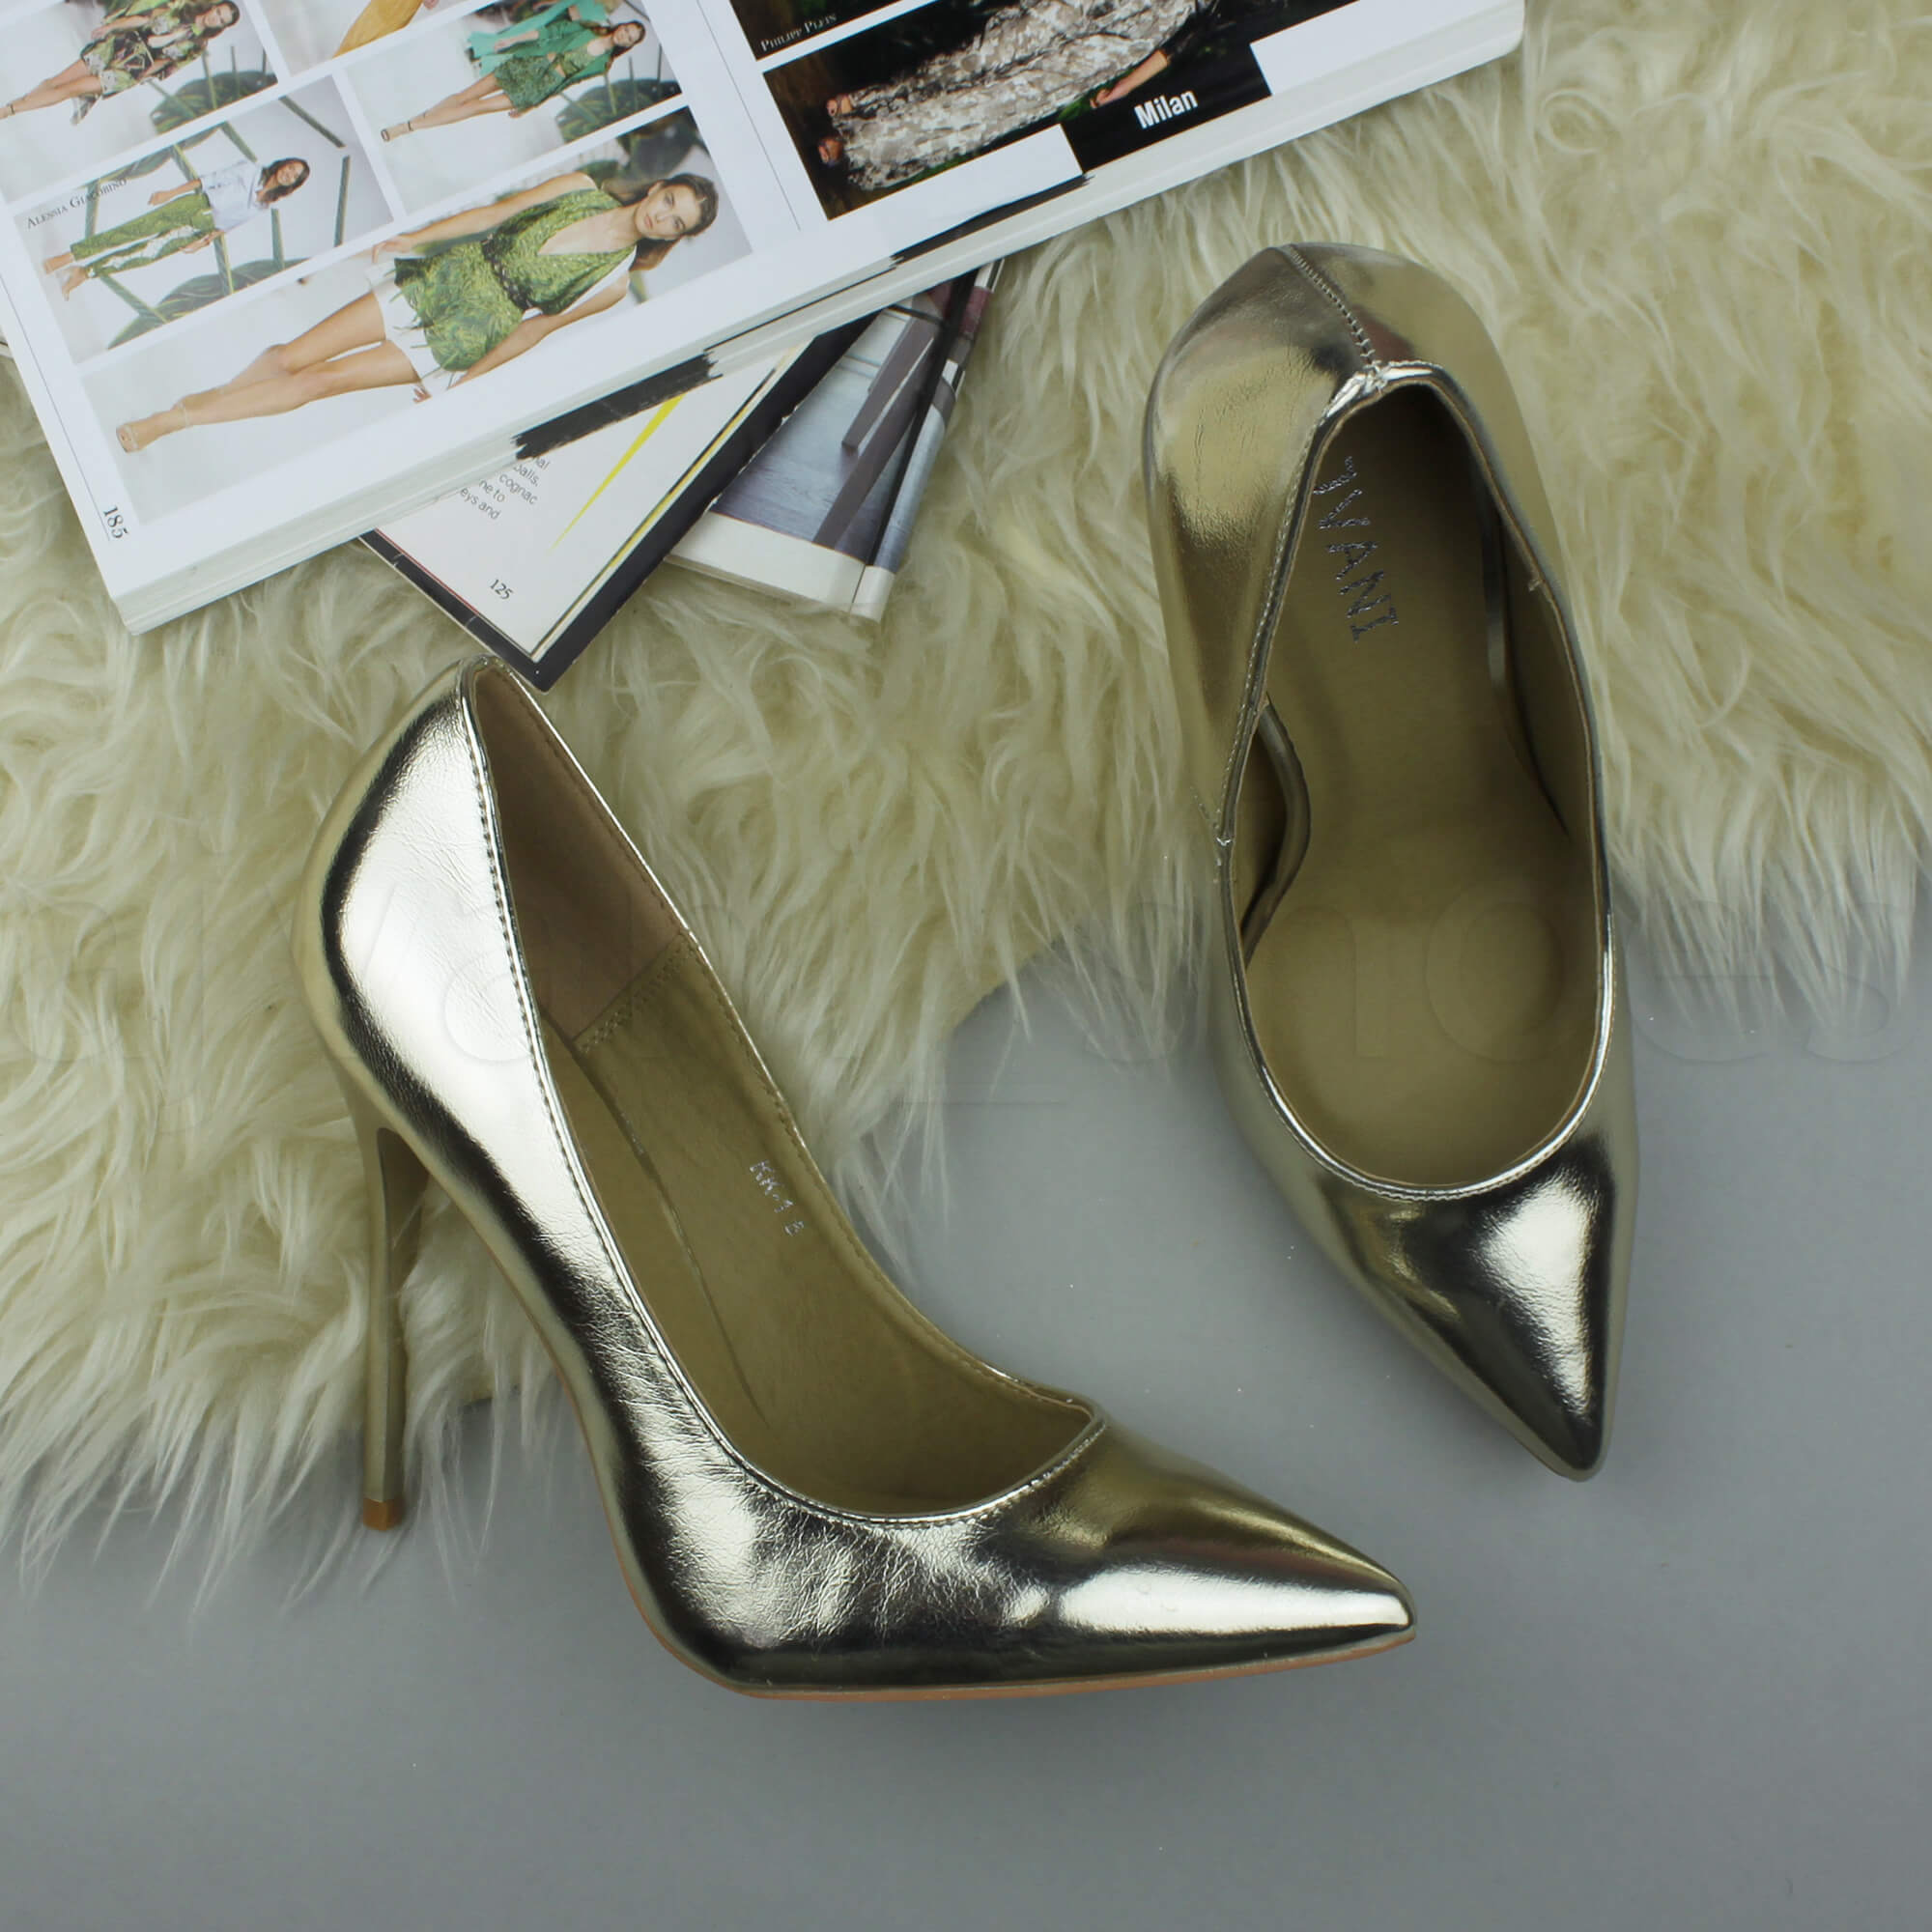 WOMENS-LADIES-HIGH-HEEL-POINTED-CONTRAST-COURT-SMART-PARTY-WORK-SHOES-PUMPS-SIZE thumbnail 68